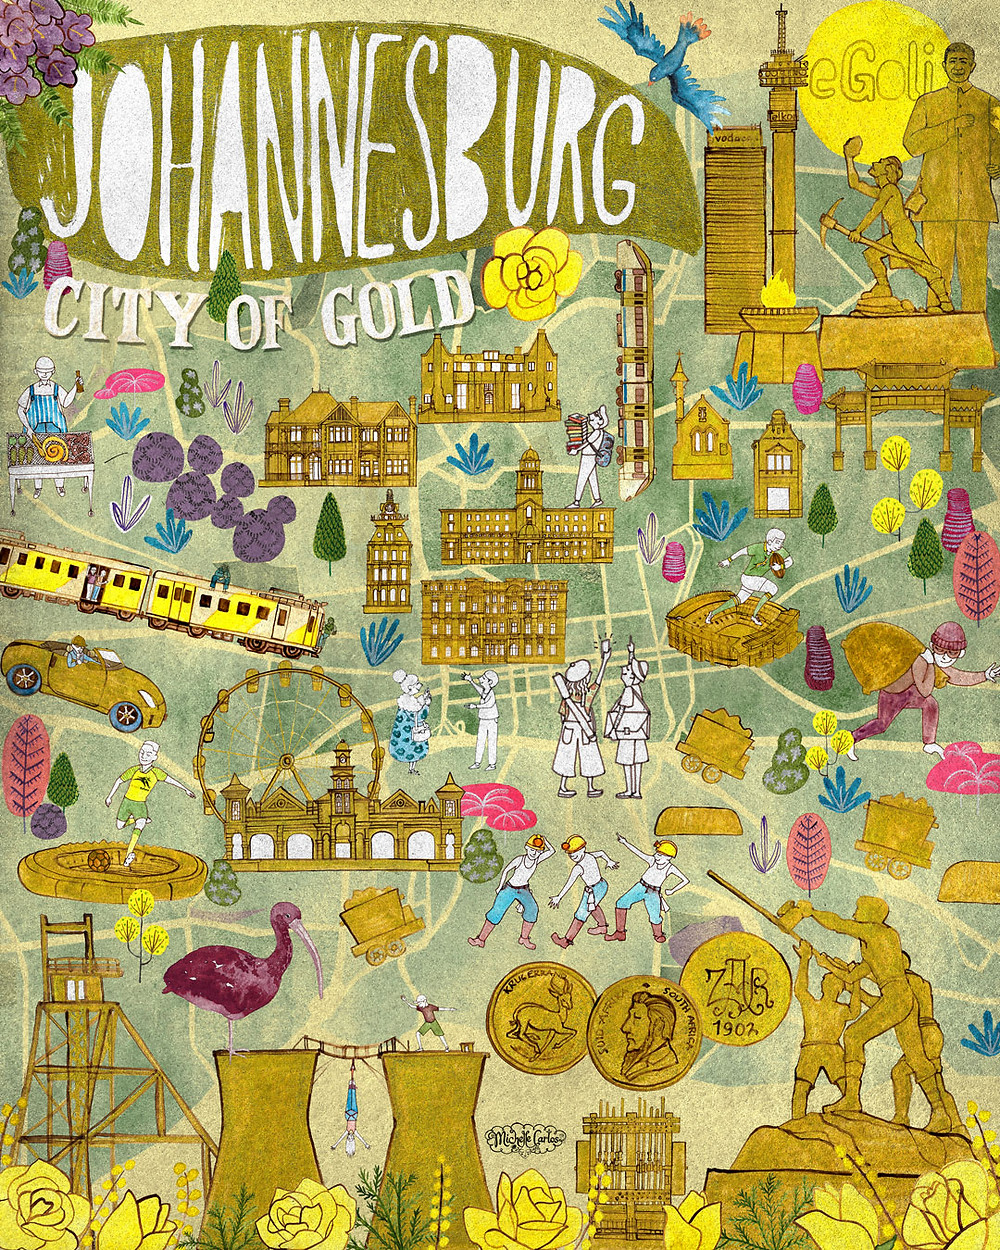 illustrated map of Johannesburg